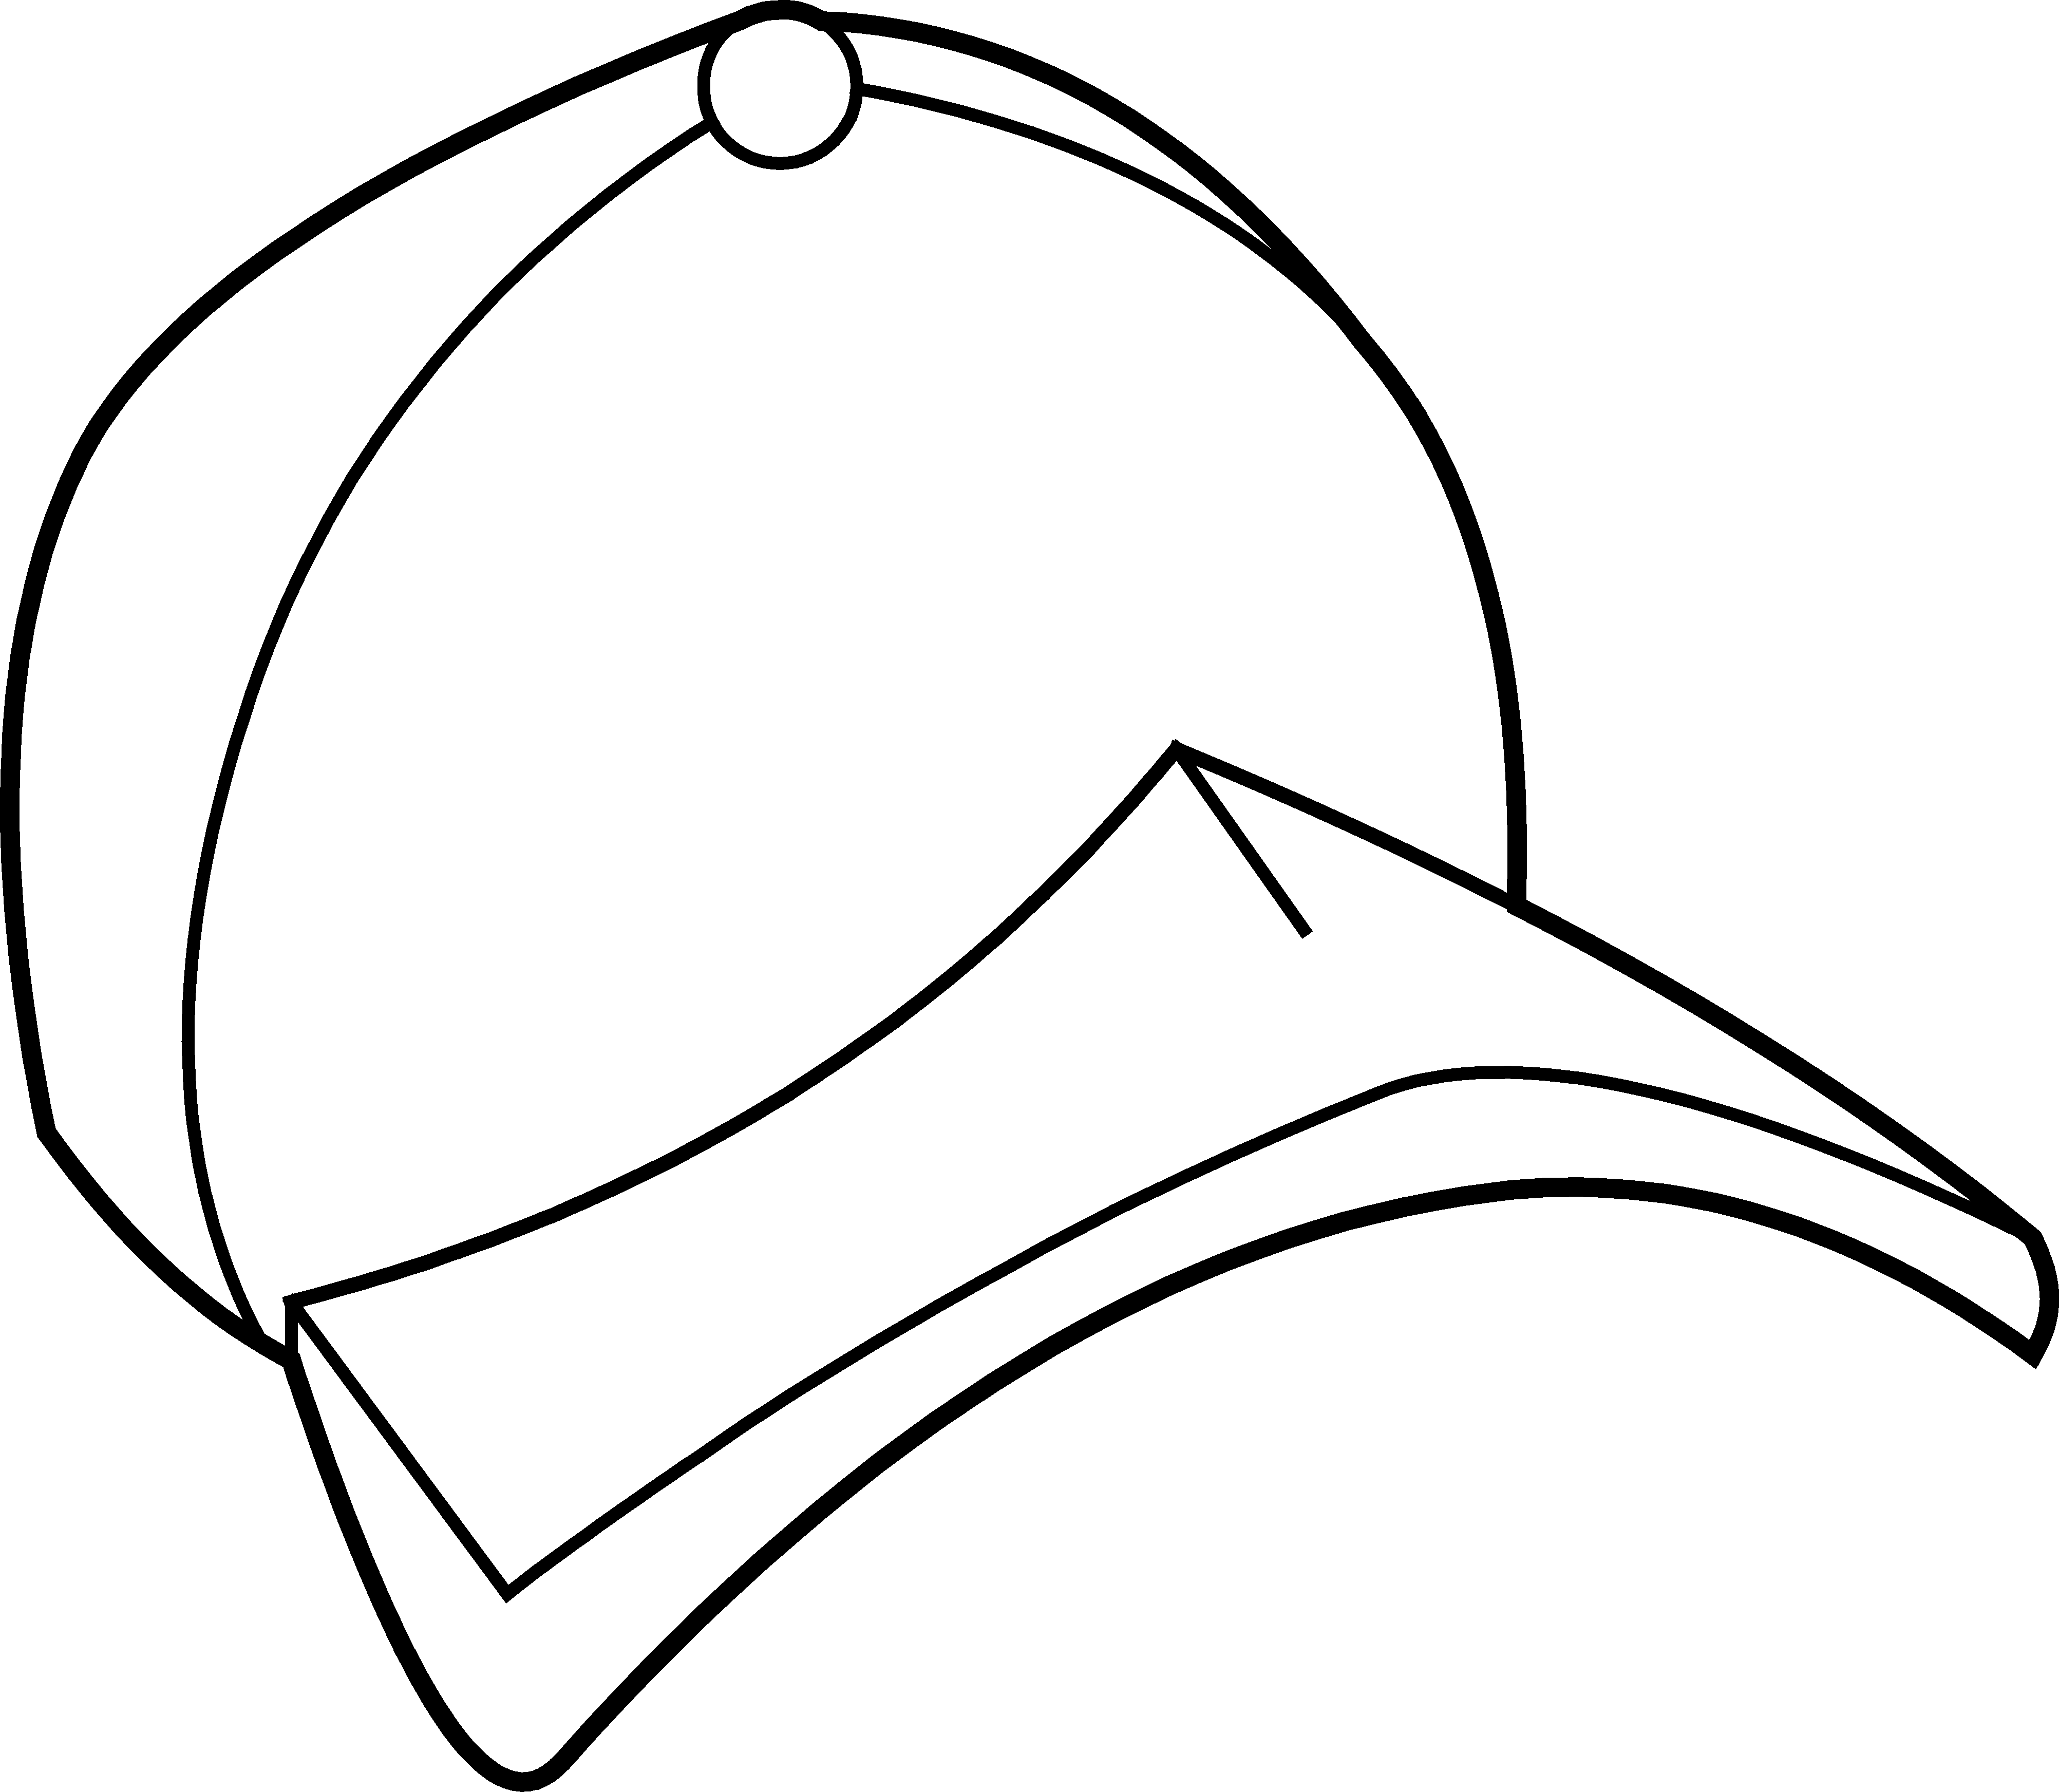 Line Drawing Hat : Baseball hat clipart black and white panda